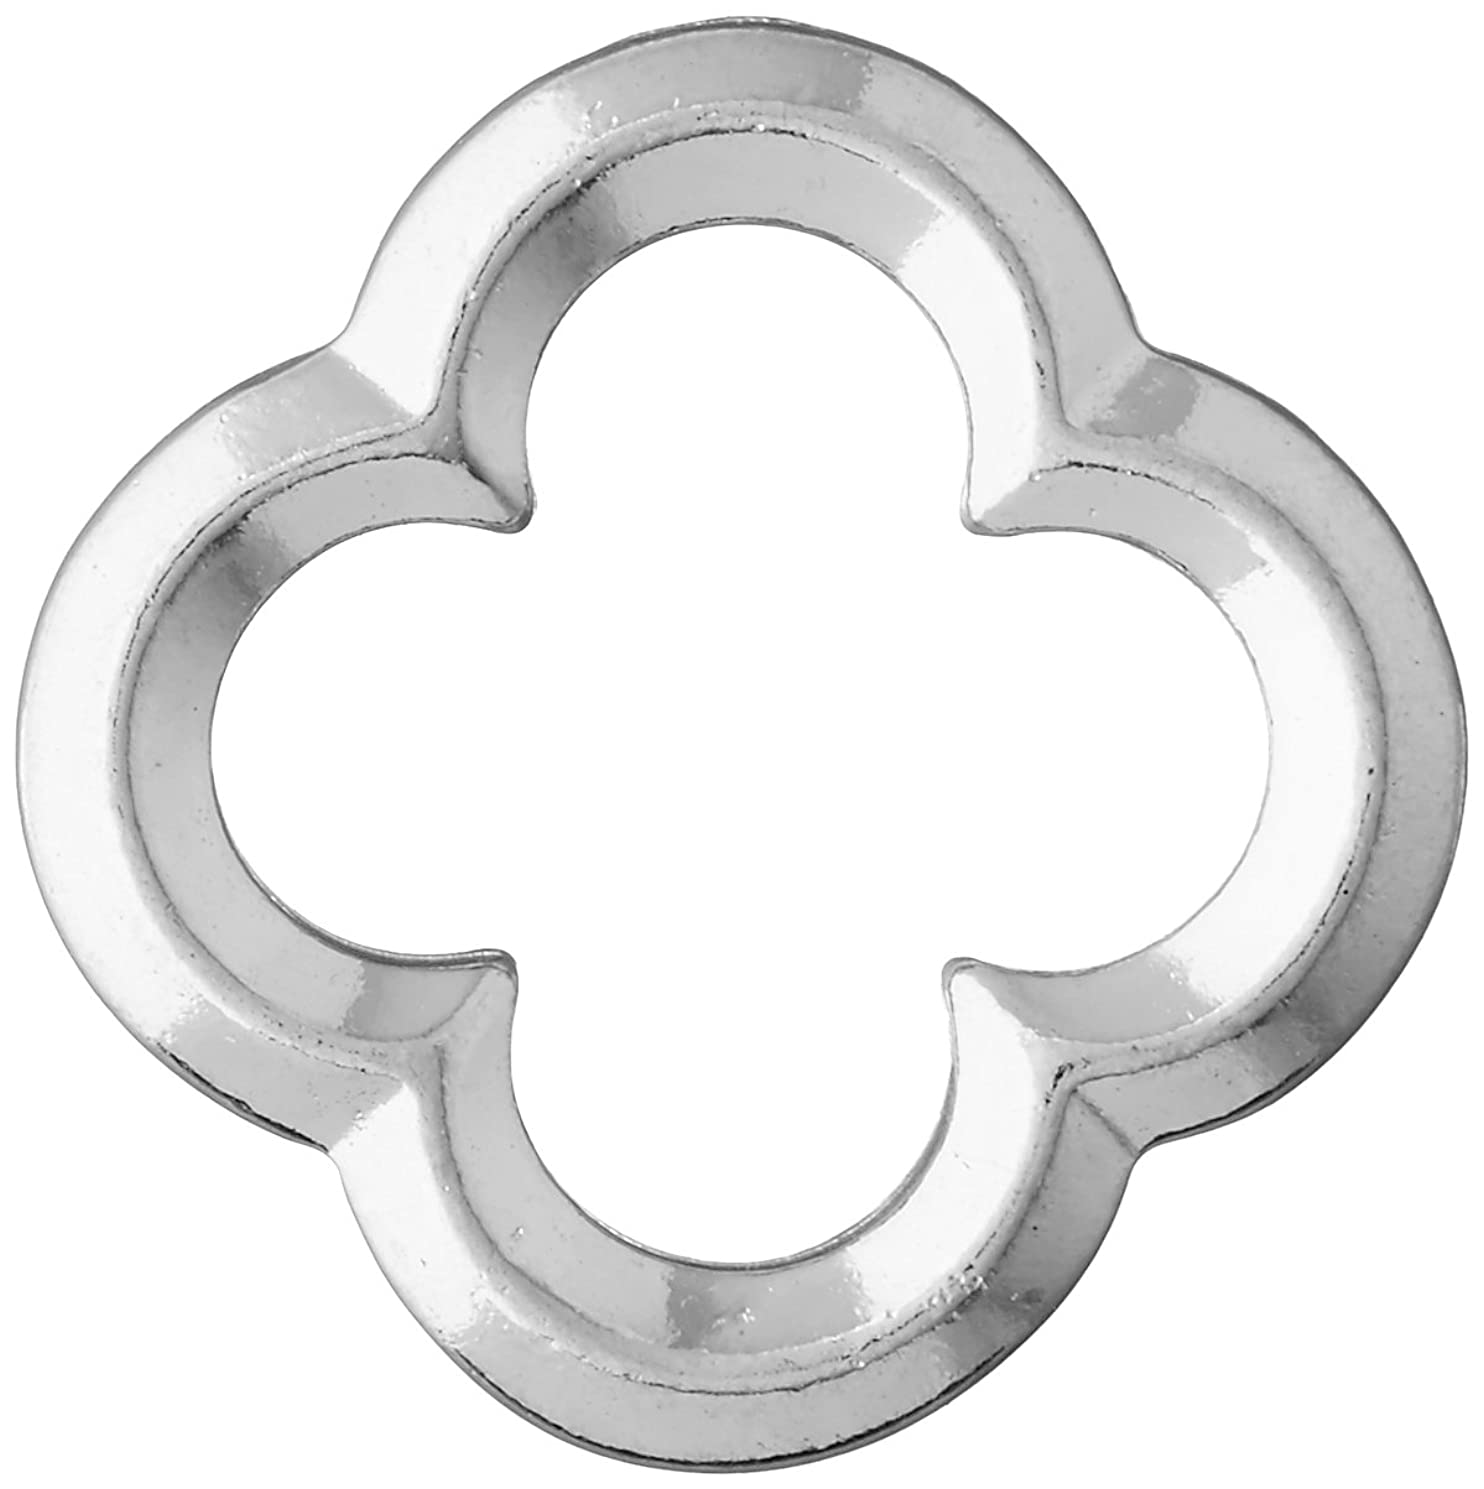 TierraCast Quatrefoil Ring Charm, 21.6mm, Bright Rhodium Plated Pewter, 4-Pack